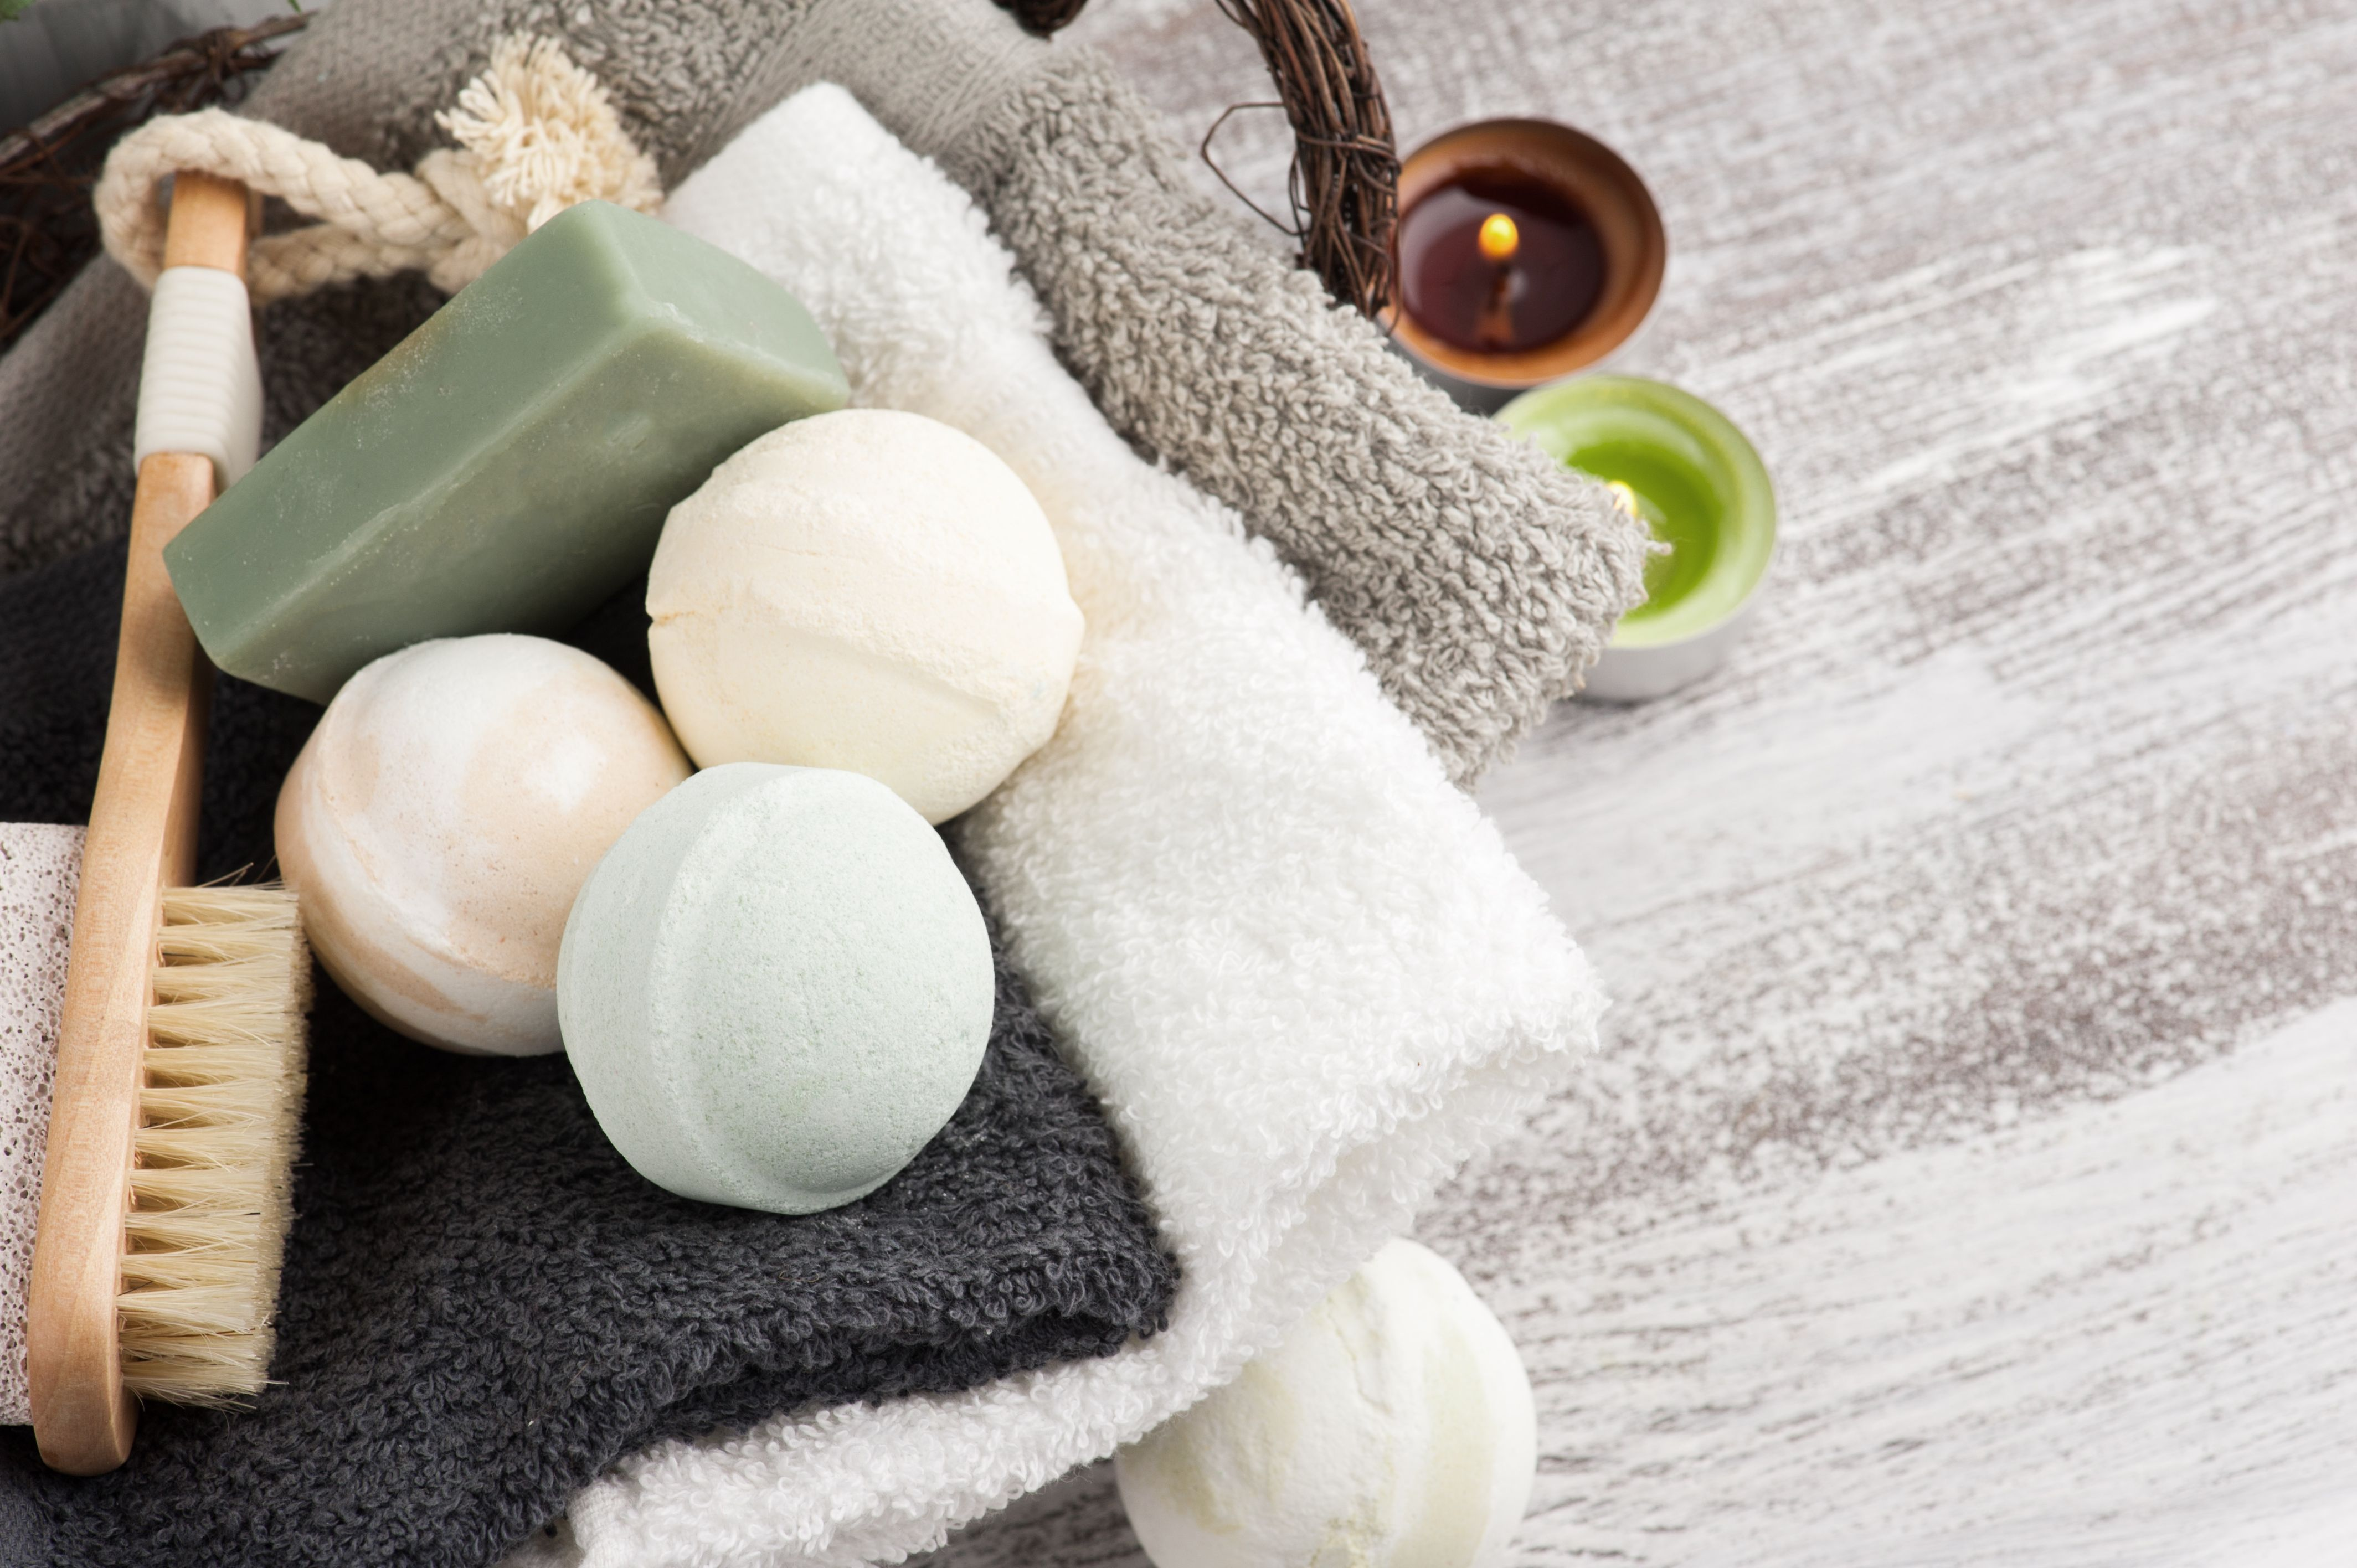 The 10 Best Bath Bombs for Major Relaxation